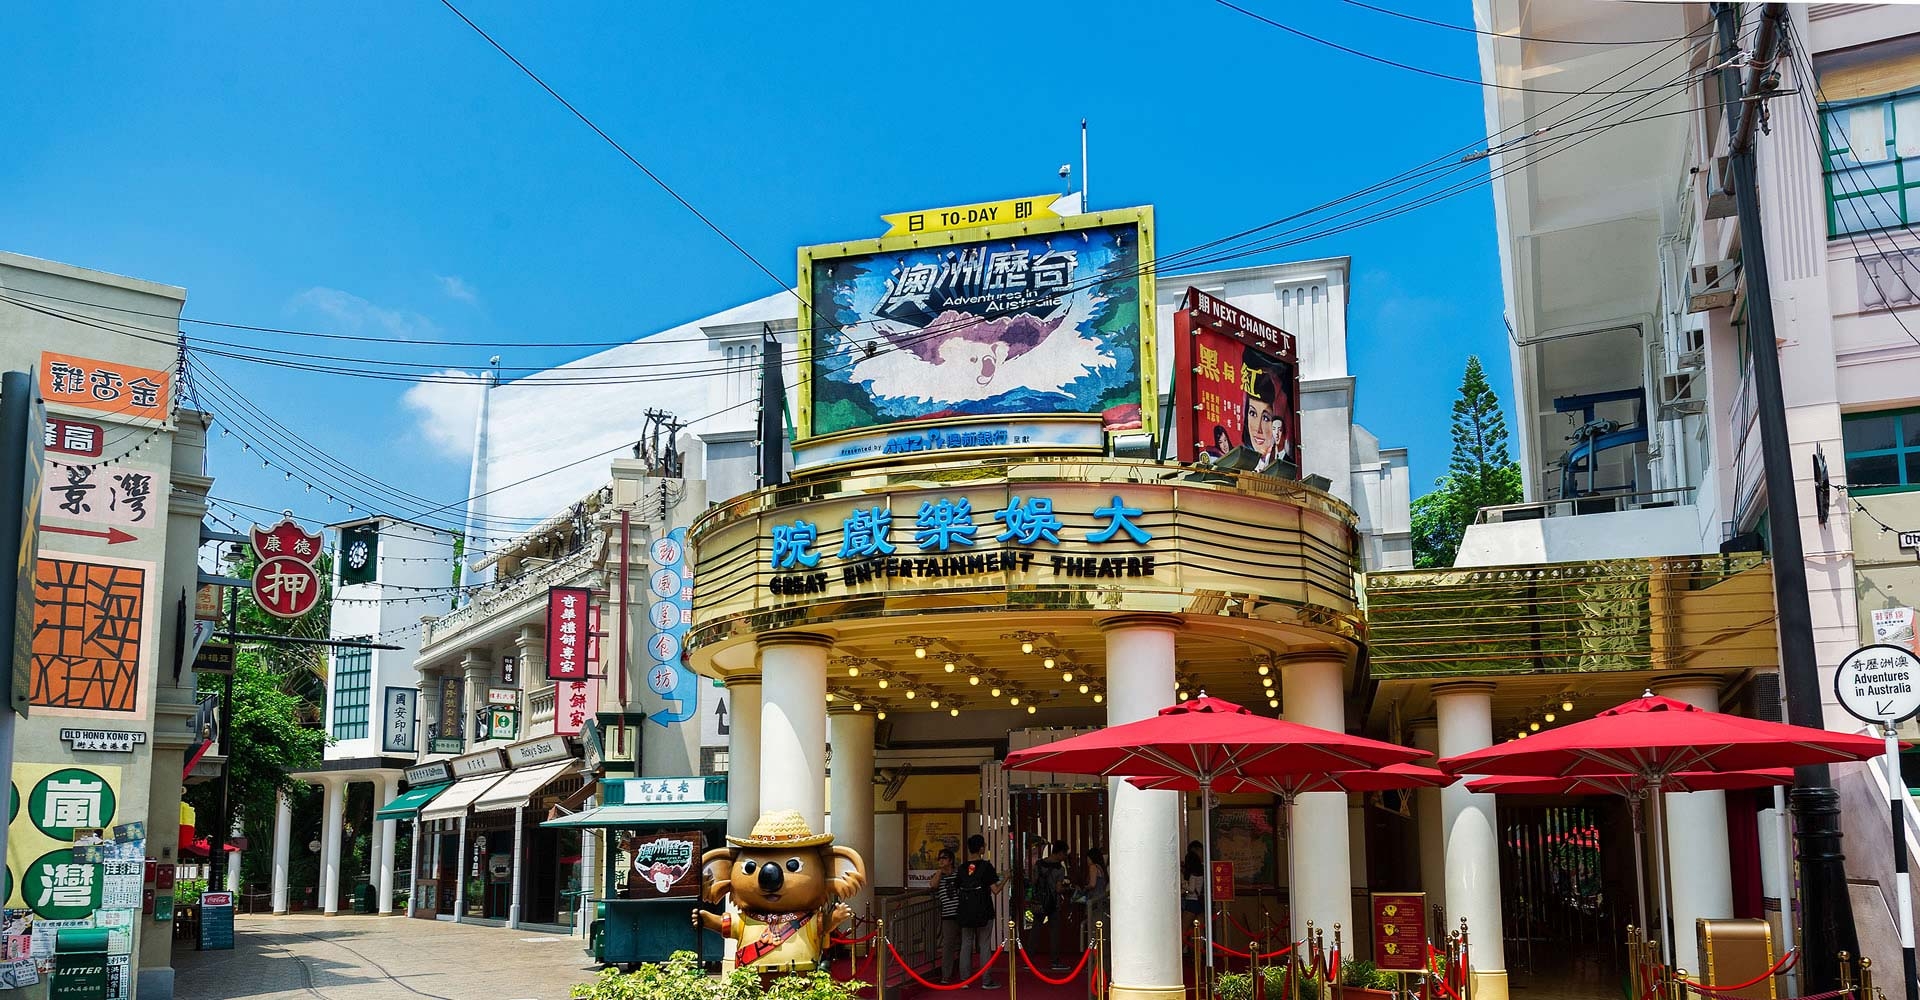 https://media.oceanpark.com.hk/files/s3fs-public/AdventuresAustraliax1.jpg